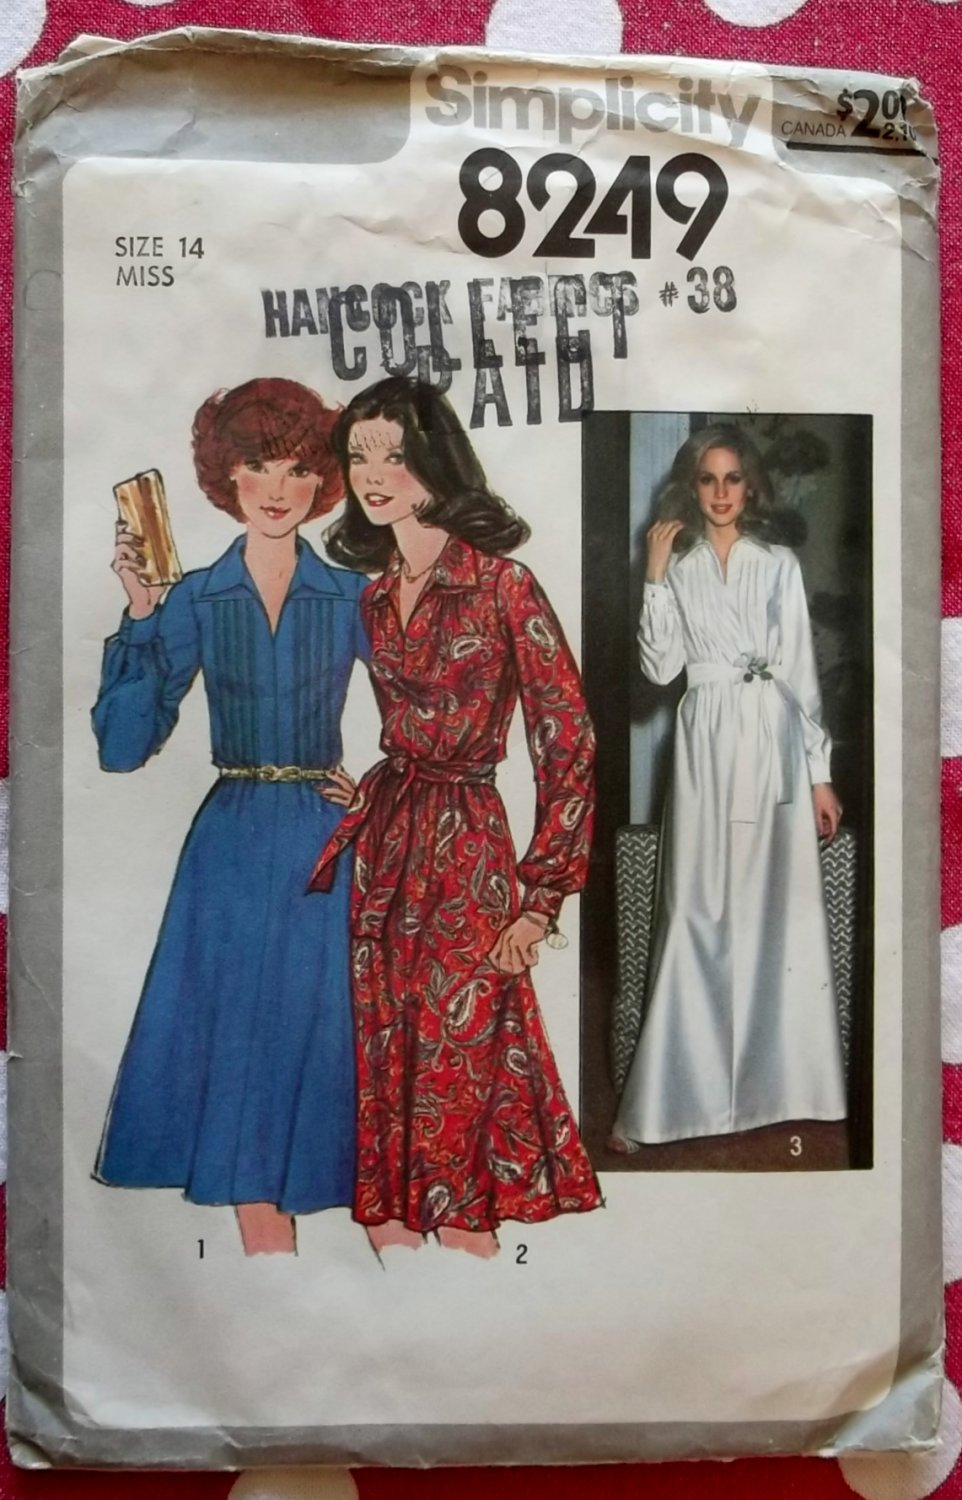 Vintage 1977 Simplicity 8249 Sewing Pattern, Maxi or Knee Length Dress, Sz 14, Uncut